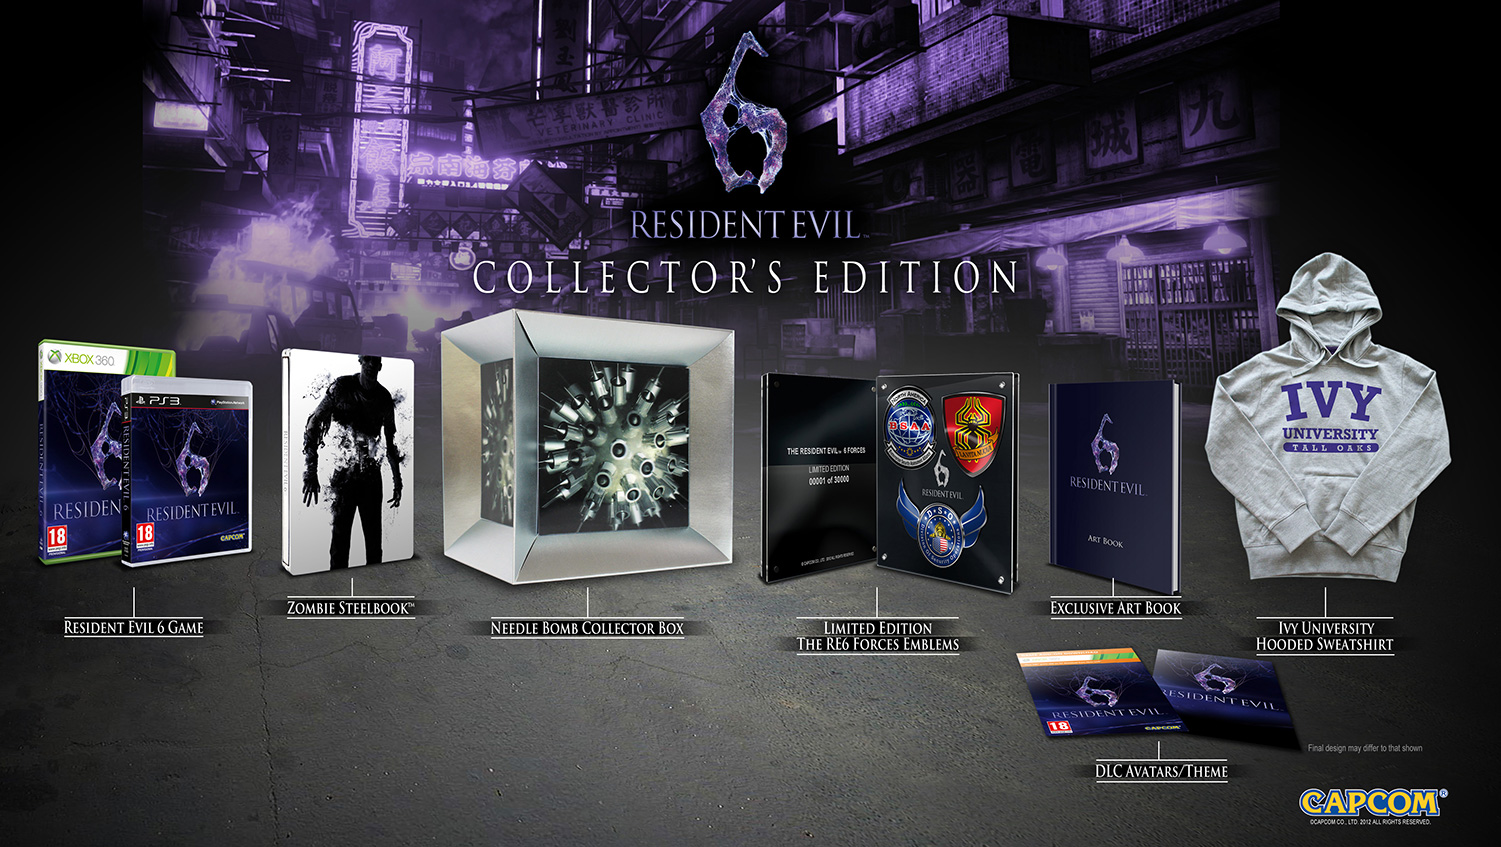 resident evil 6 collectors edition - Resident Evil 6: Collectors Edition enthüllt